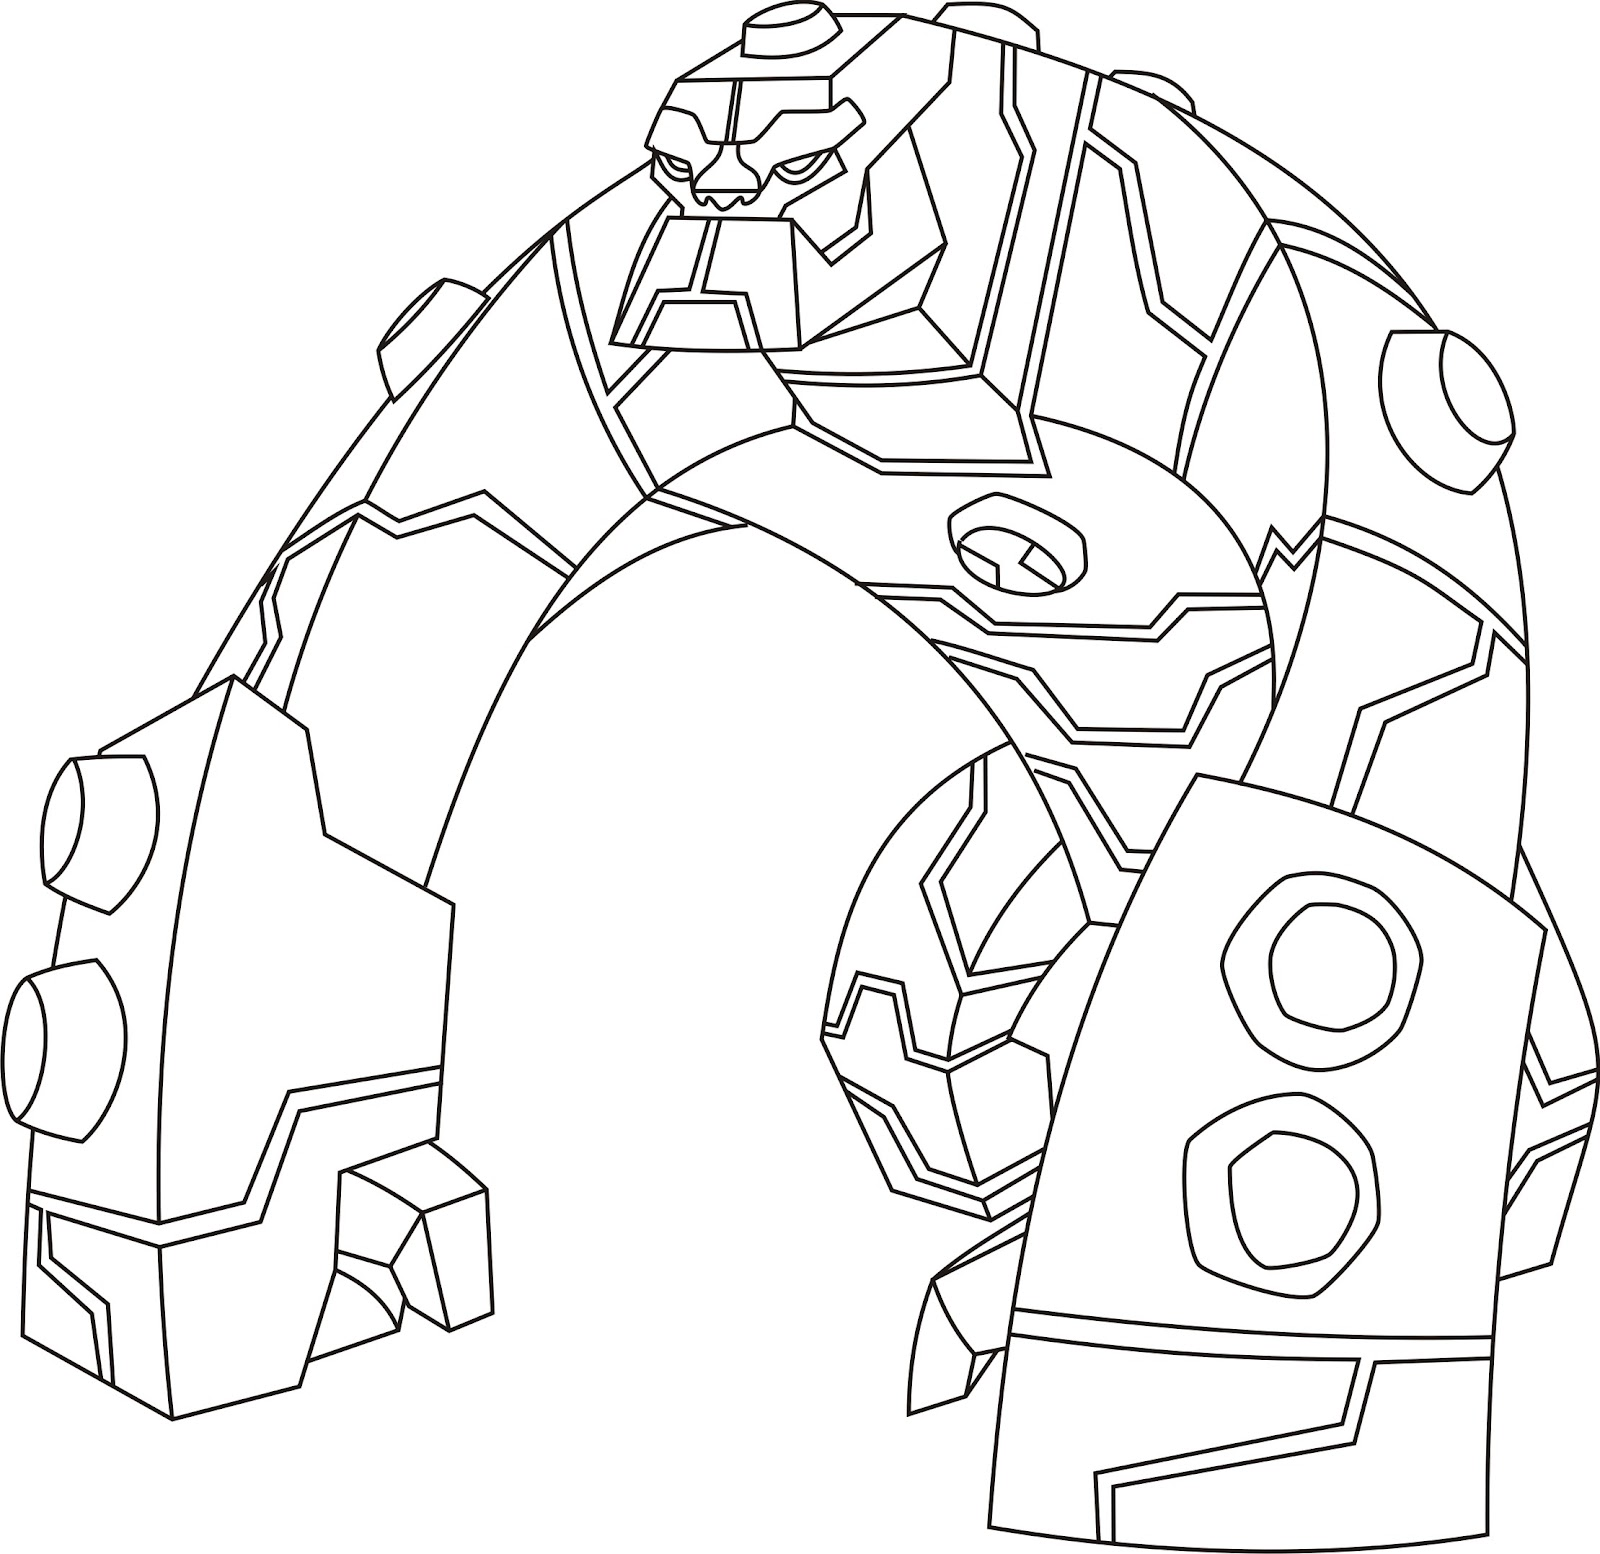 ben 10 coloring pages - photo#7